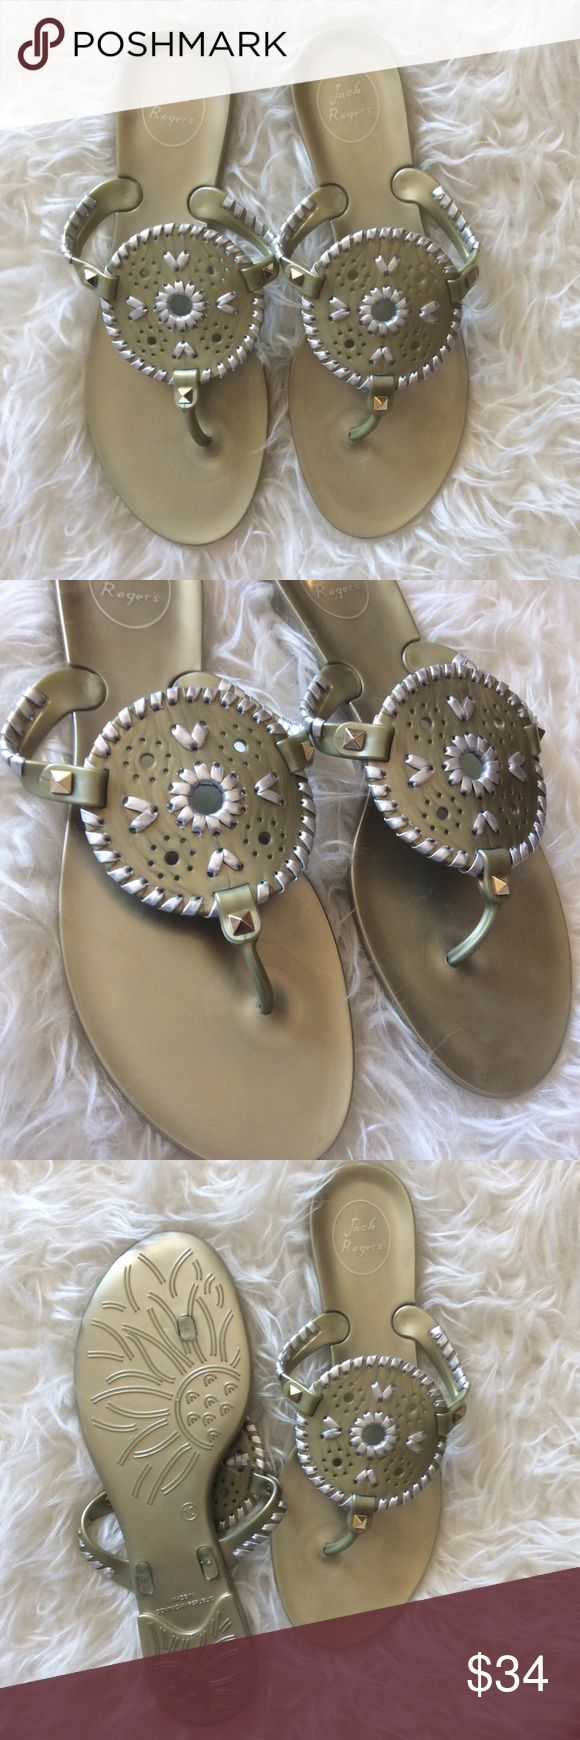 Jack Rogers Georgica Jelly Thong Sandals Excellent, new without tags Jack Rogers Georgica Jelly Thong Sandals. Size 10. Platinum/Silver. Pyramid studs are gold, trim is silver. No trades, offers welcome. Jack Rogers Shoes Sandals